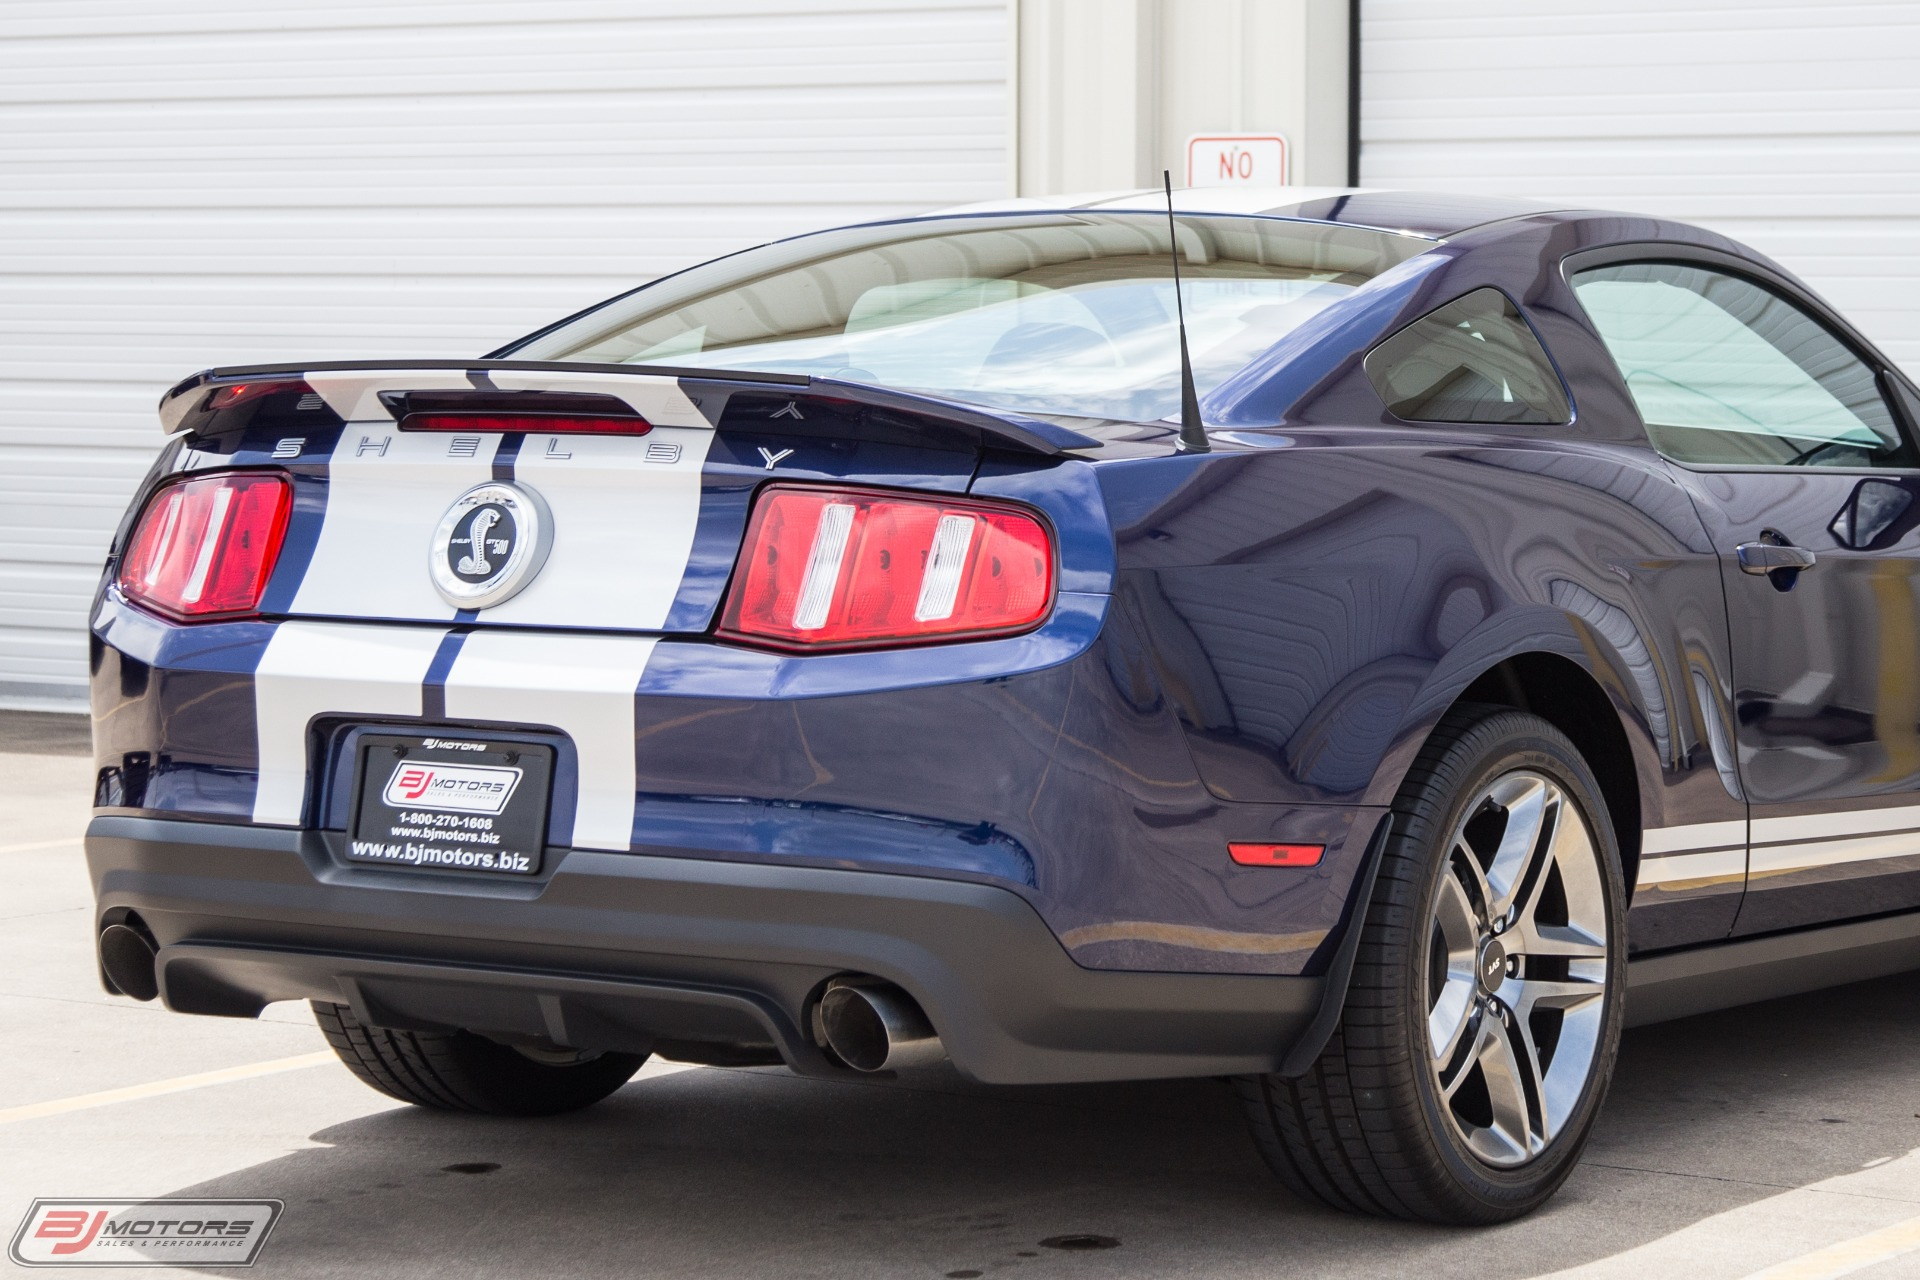 Used-2010-Ford-Mustang-Shelby-GT500-Only-138-Miles